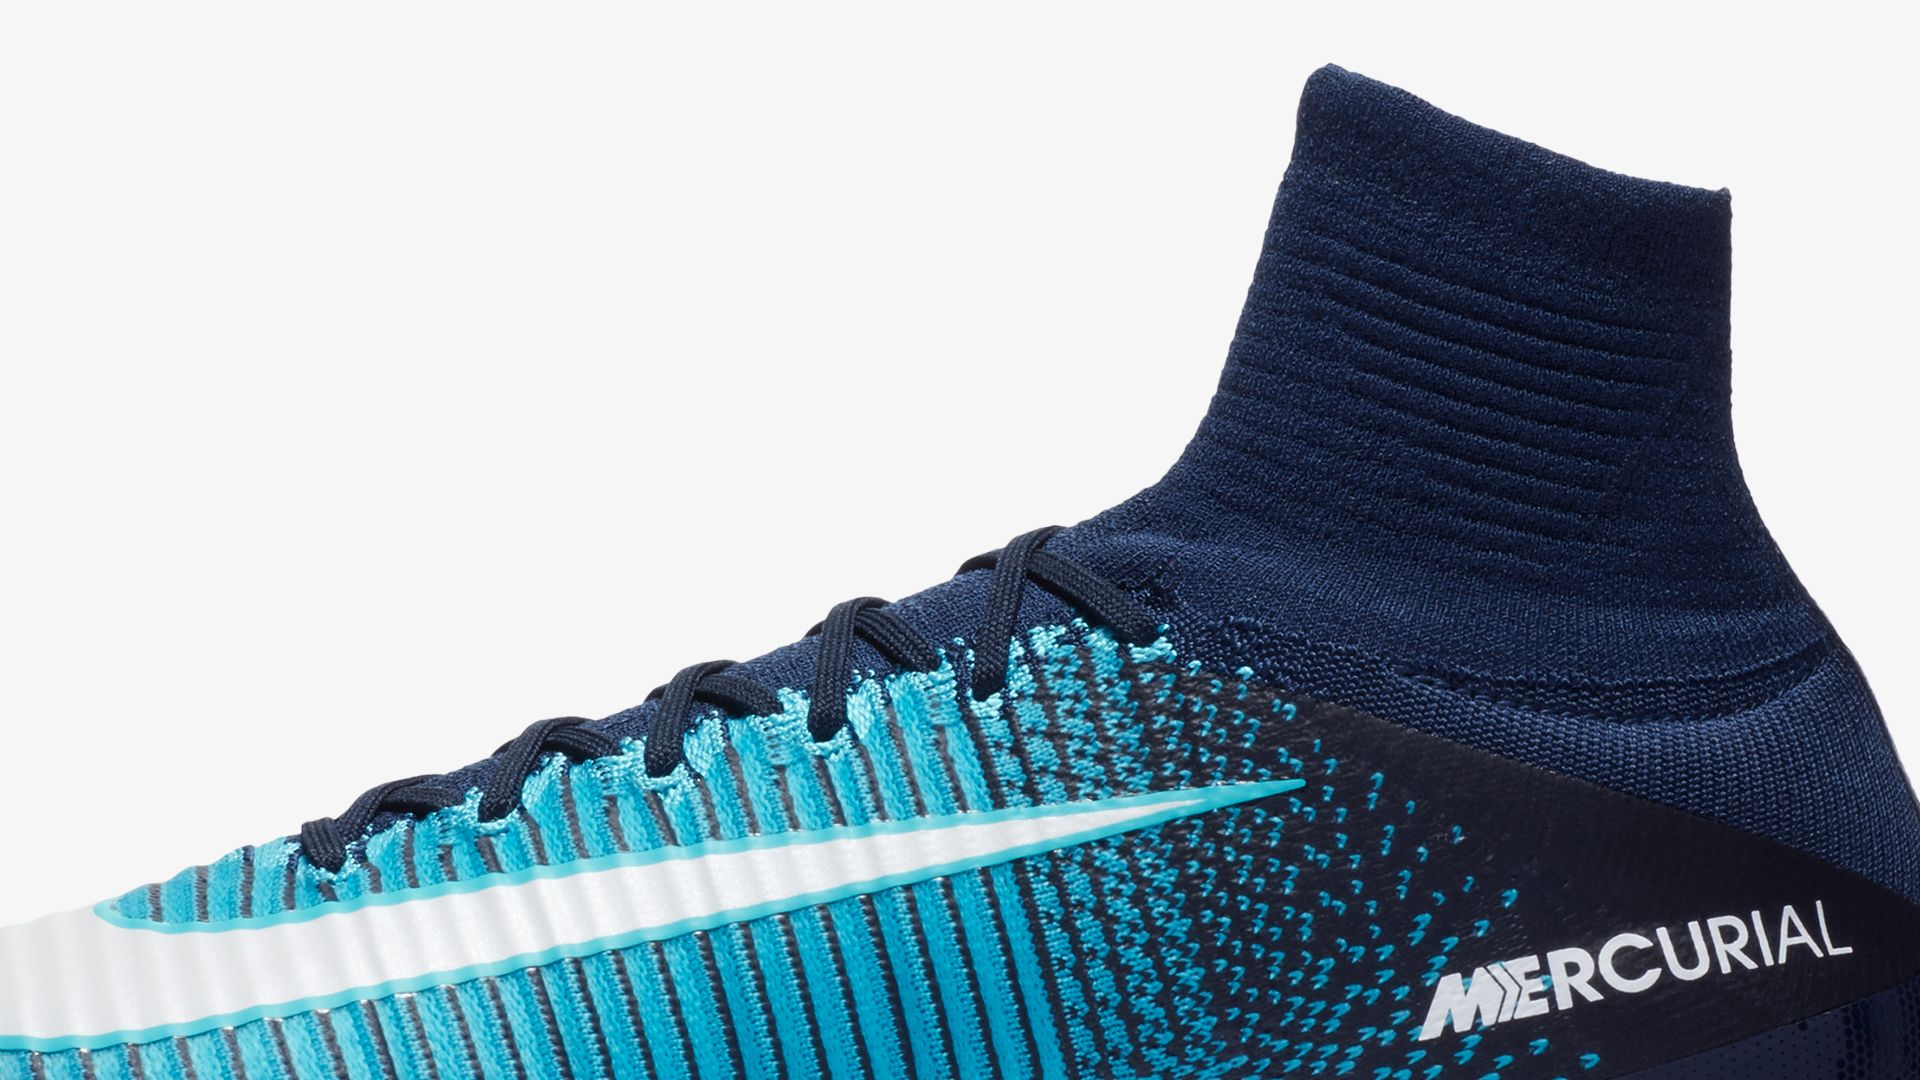 Nike Play Superfly Mercurial 5De Ice rdsQht